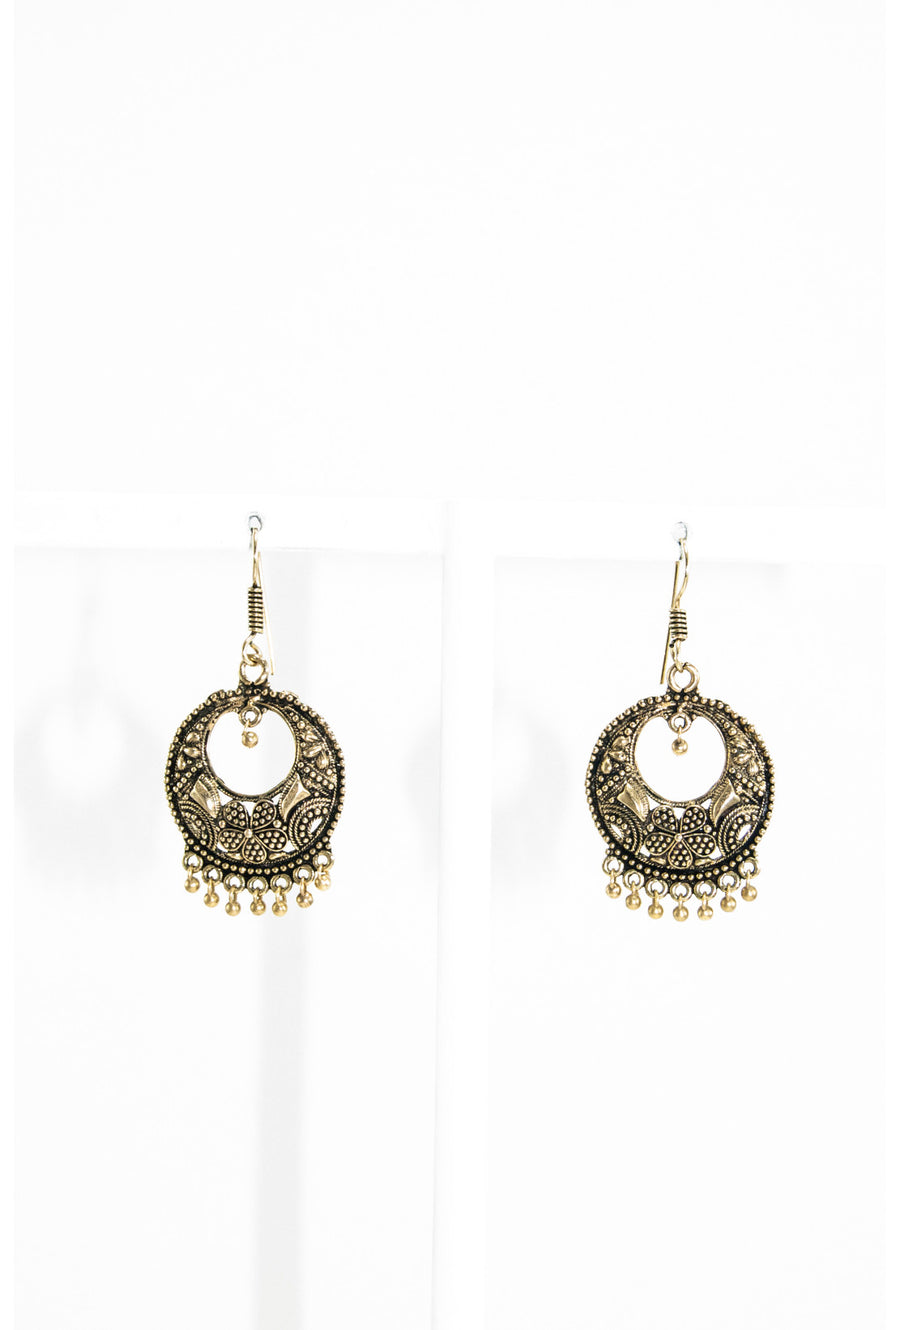 Gold round earrings - Desi Royale